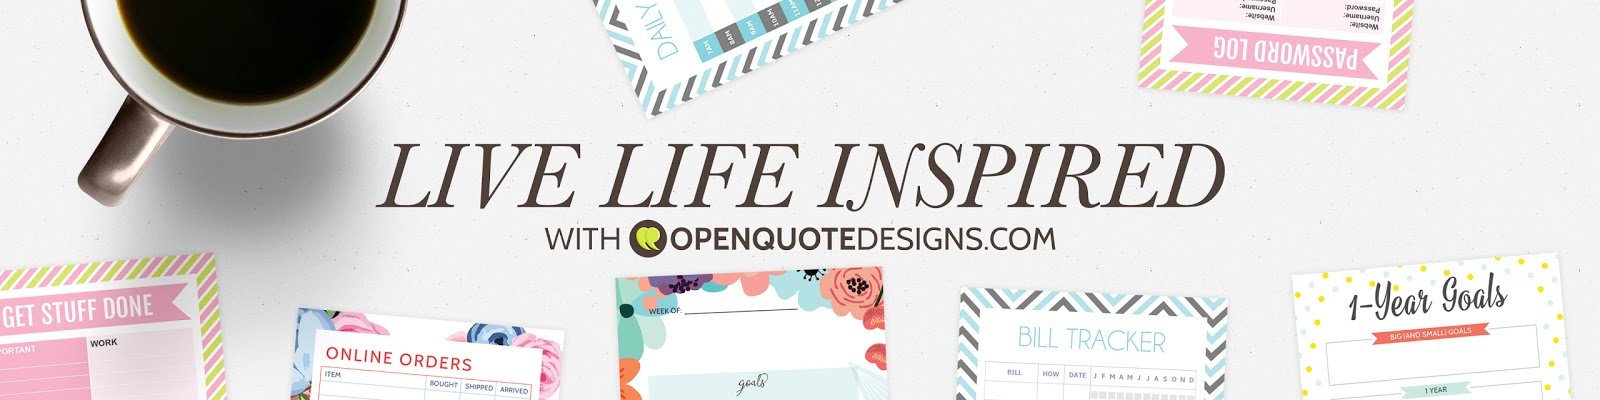 Openquote Designs banner - link to website